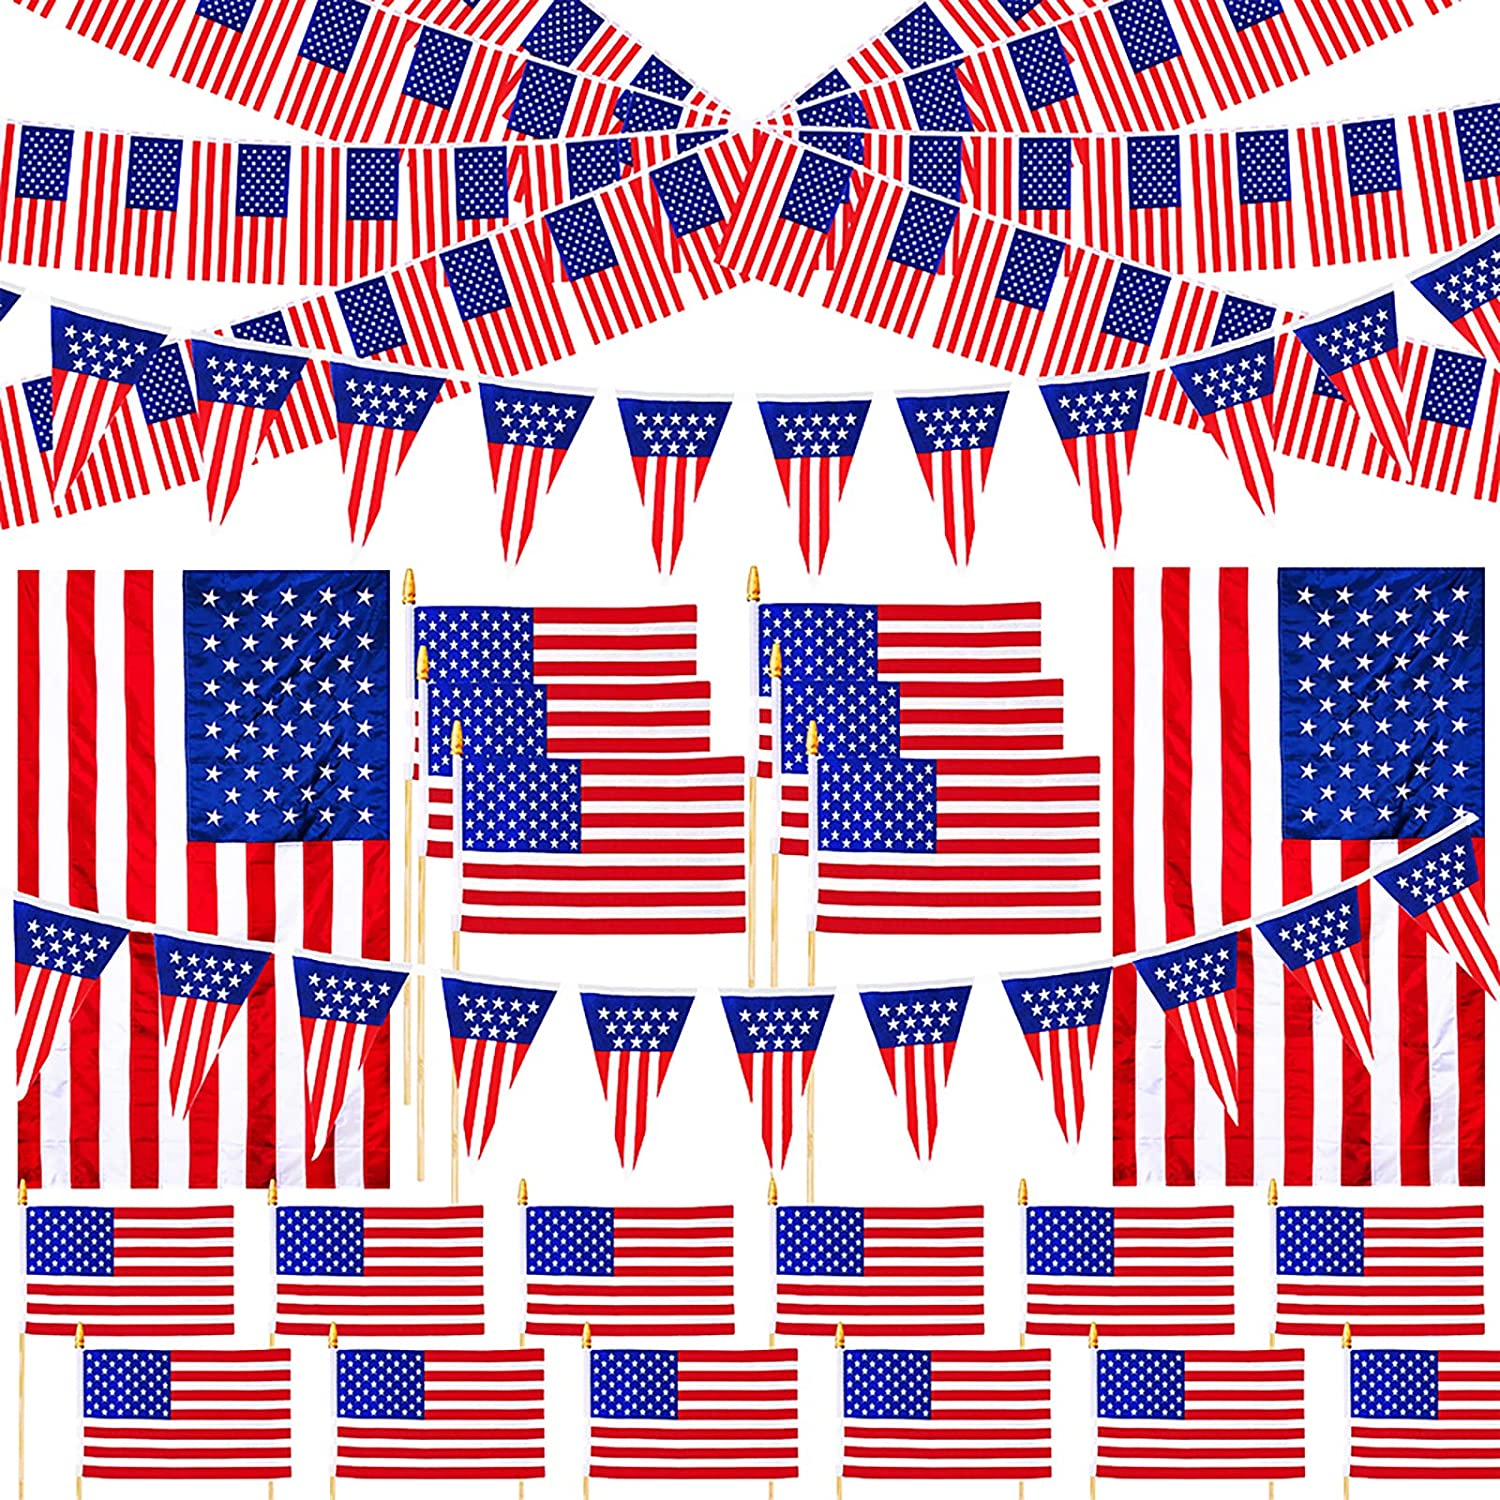 23 Pcs Assorted Patriotic American Flag Outdoor Decorating Kit USA American Flag Lawn Garden Flag on Sticks Plastic Flag Banner Pennant Banner for 4th of July Patriotic Party Parade Float Decorations